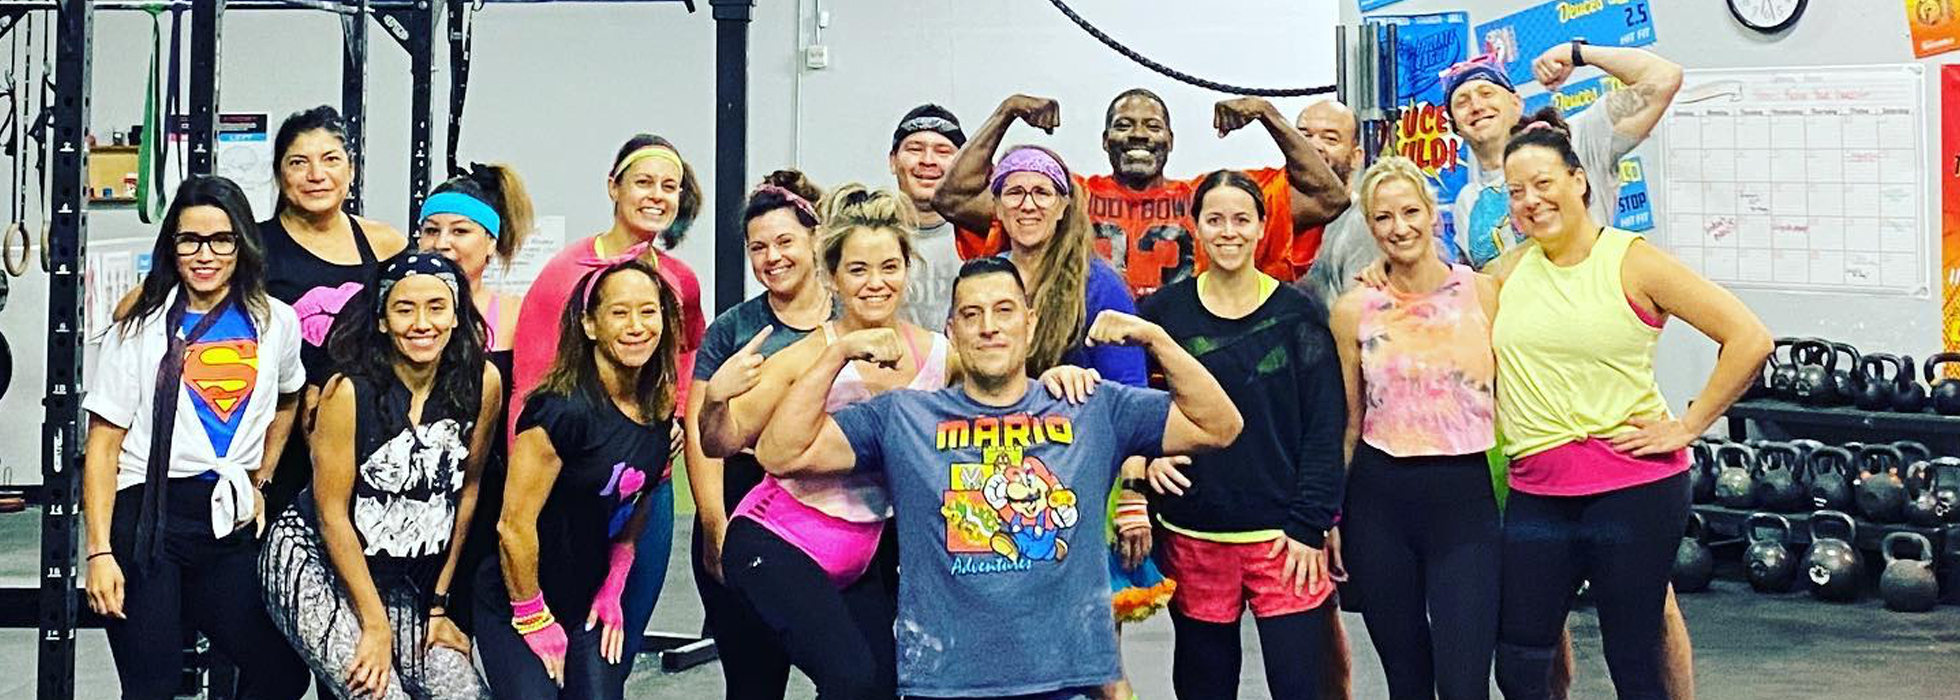 Why Hit Fit CA Is Ranked One Of The Best Gyms near Temecula CA, Why Hit Fit CA Is Ranked One Of The Best Gyms near Murrieta CA, Why Hit Fit CA Is Ranked One Of The Best Gyms near Fallbrook CA, Why Hit Fit CA Is Ranked One Of The Best Gyms near Wildomar CA, Why Hit Fit CA Is Ranked One Of The Best Gyms near Canyon Lake CA, Why Hit Fit CA Is Ranked One Of The Best Gyms near Sun City CA, Why Hit Fit CA Is Ranked One Of The Best Gyms near Lake Elsinore CA, Why Hit Fit CA Is Ranked One Of The Best Gyms near Hemet CA, Why Hit Fit CA Is Ranked One Of The Best Gyms near Perris CA